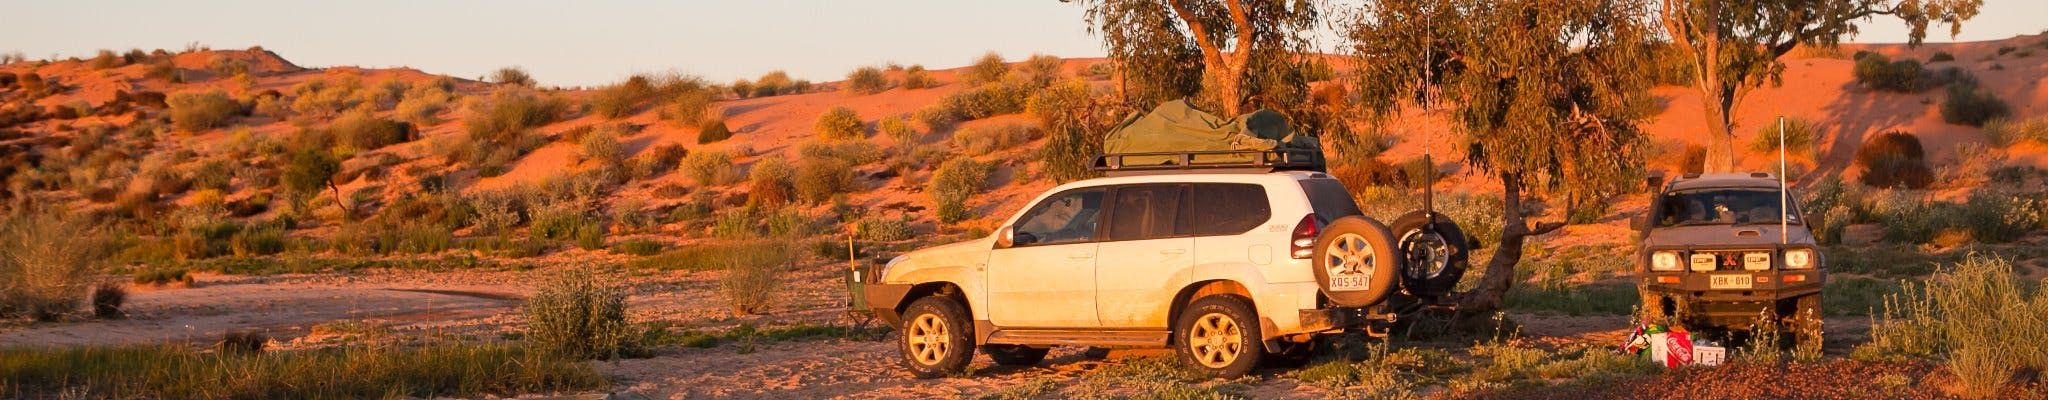 White 4Wheel drive car on dirt road, driving through red desert with green vegetation, yellow flowers on bush in foreground,